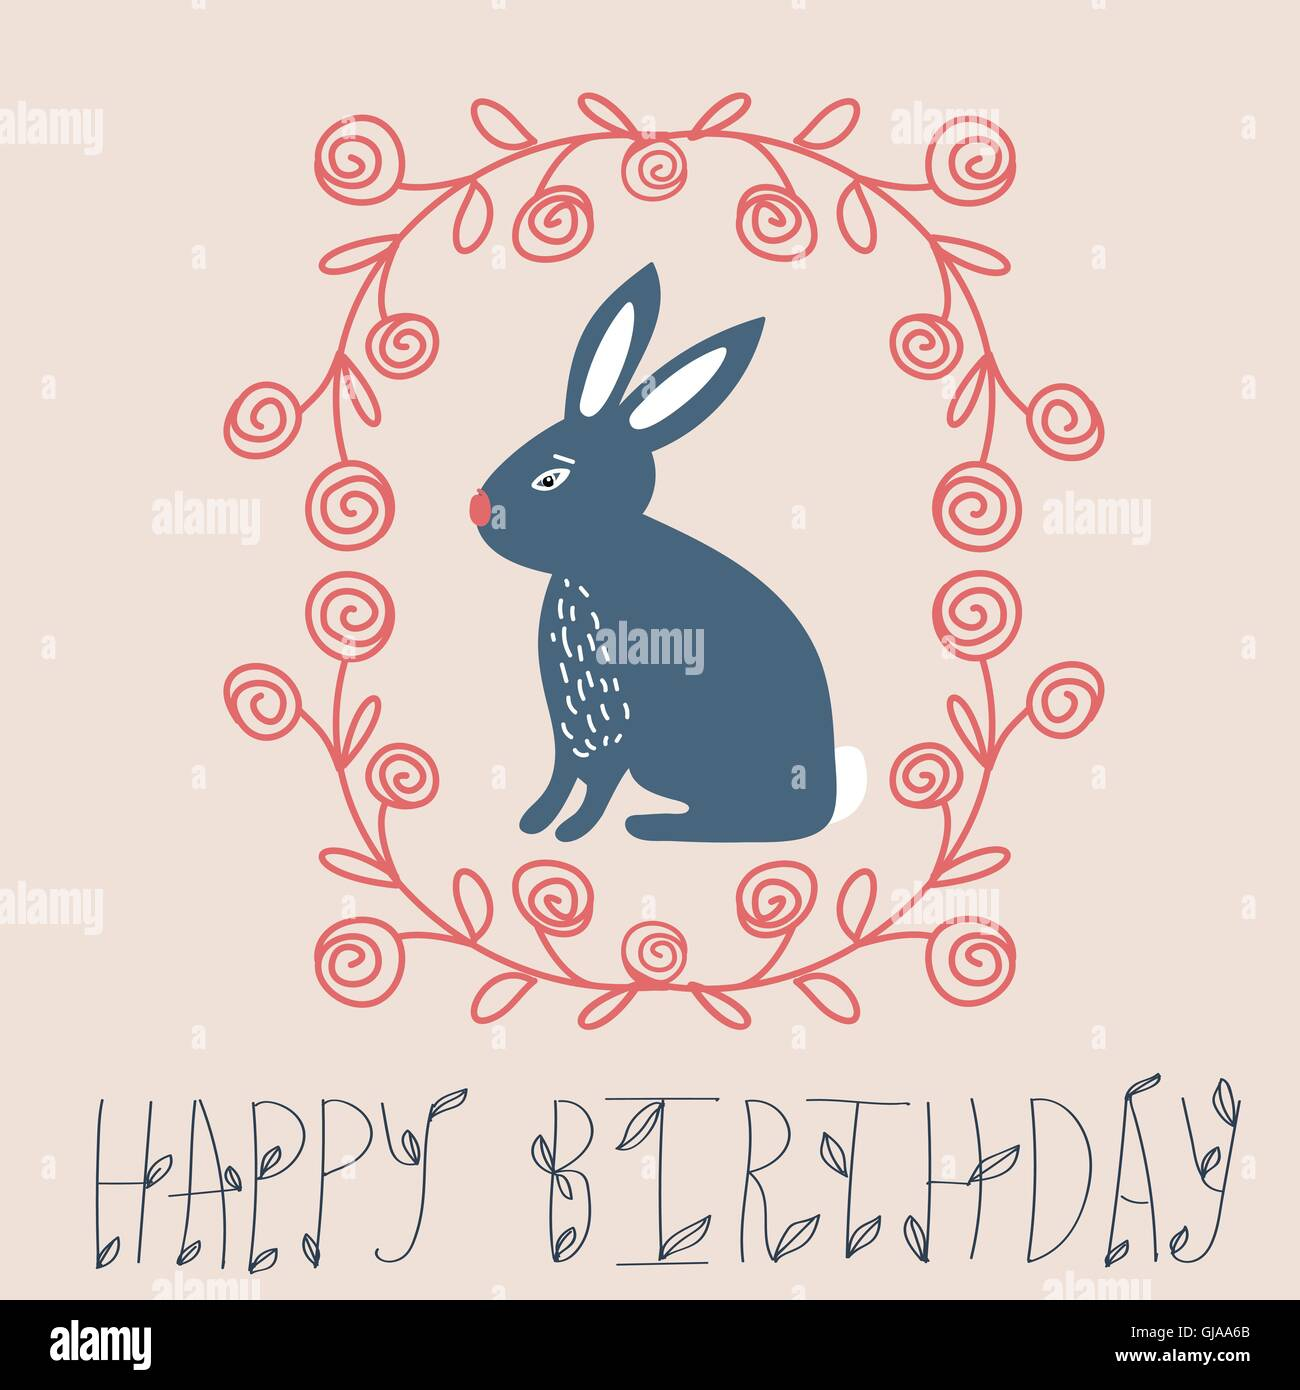 Vintage happy birthday card cute bunny and hand drawn wreath – Happy Birthday Card Cute